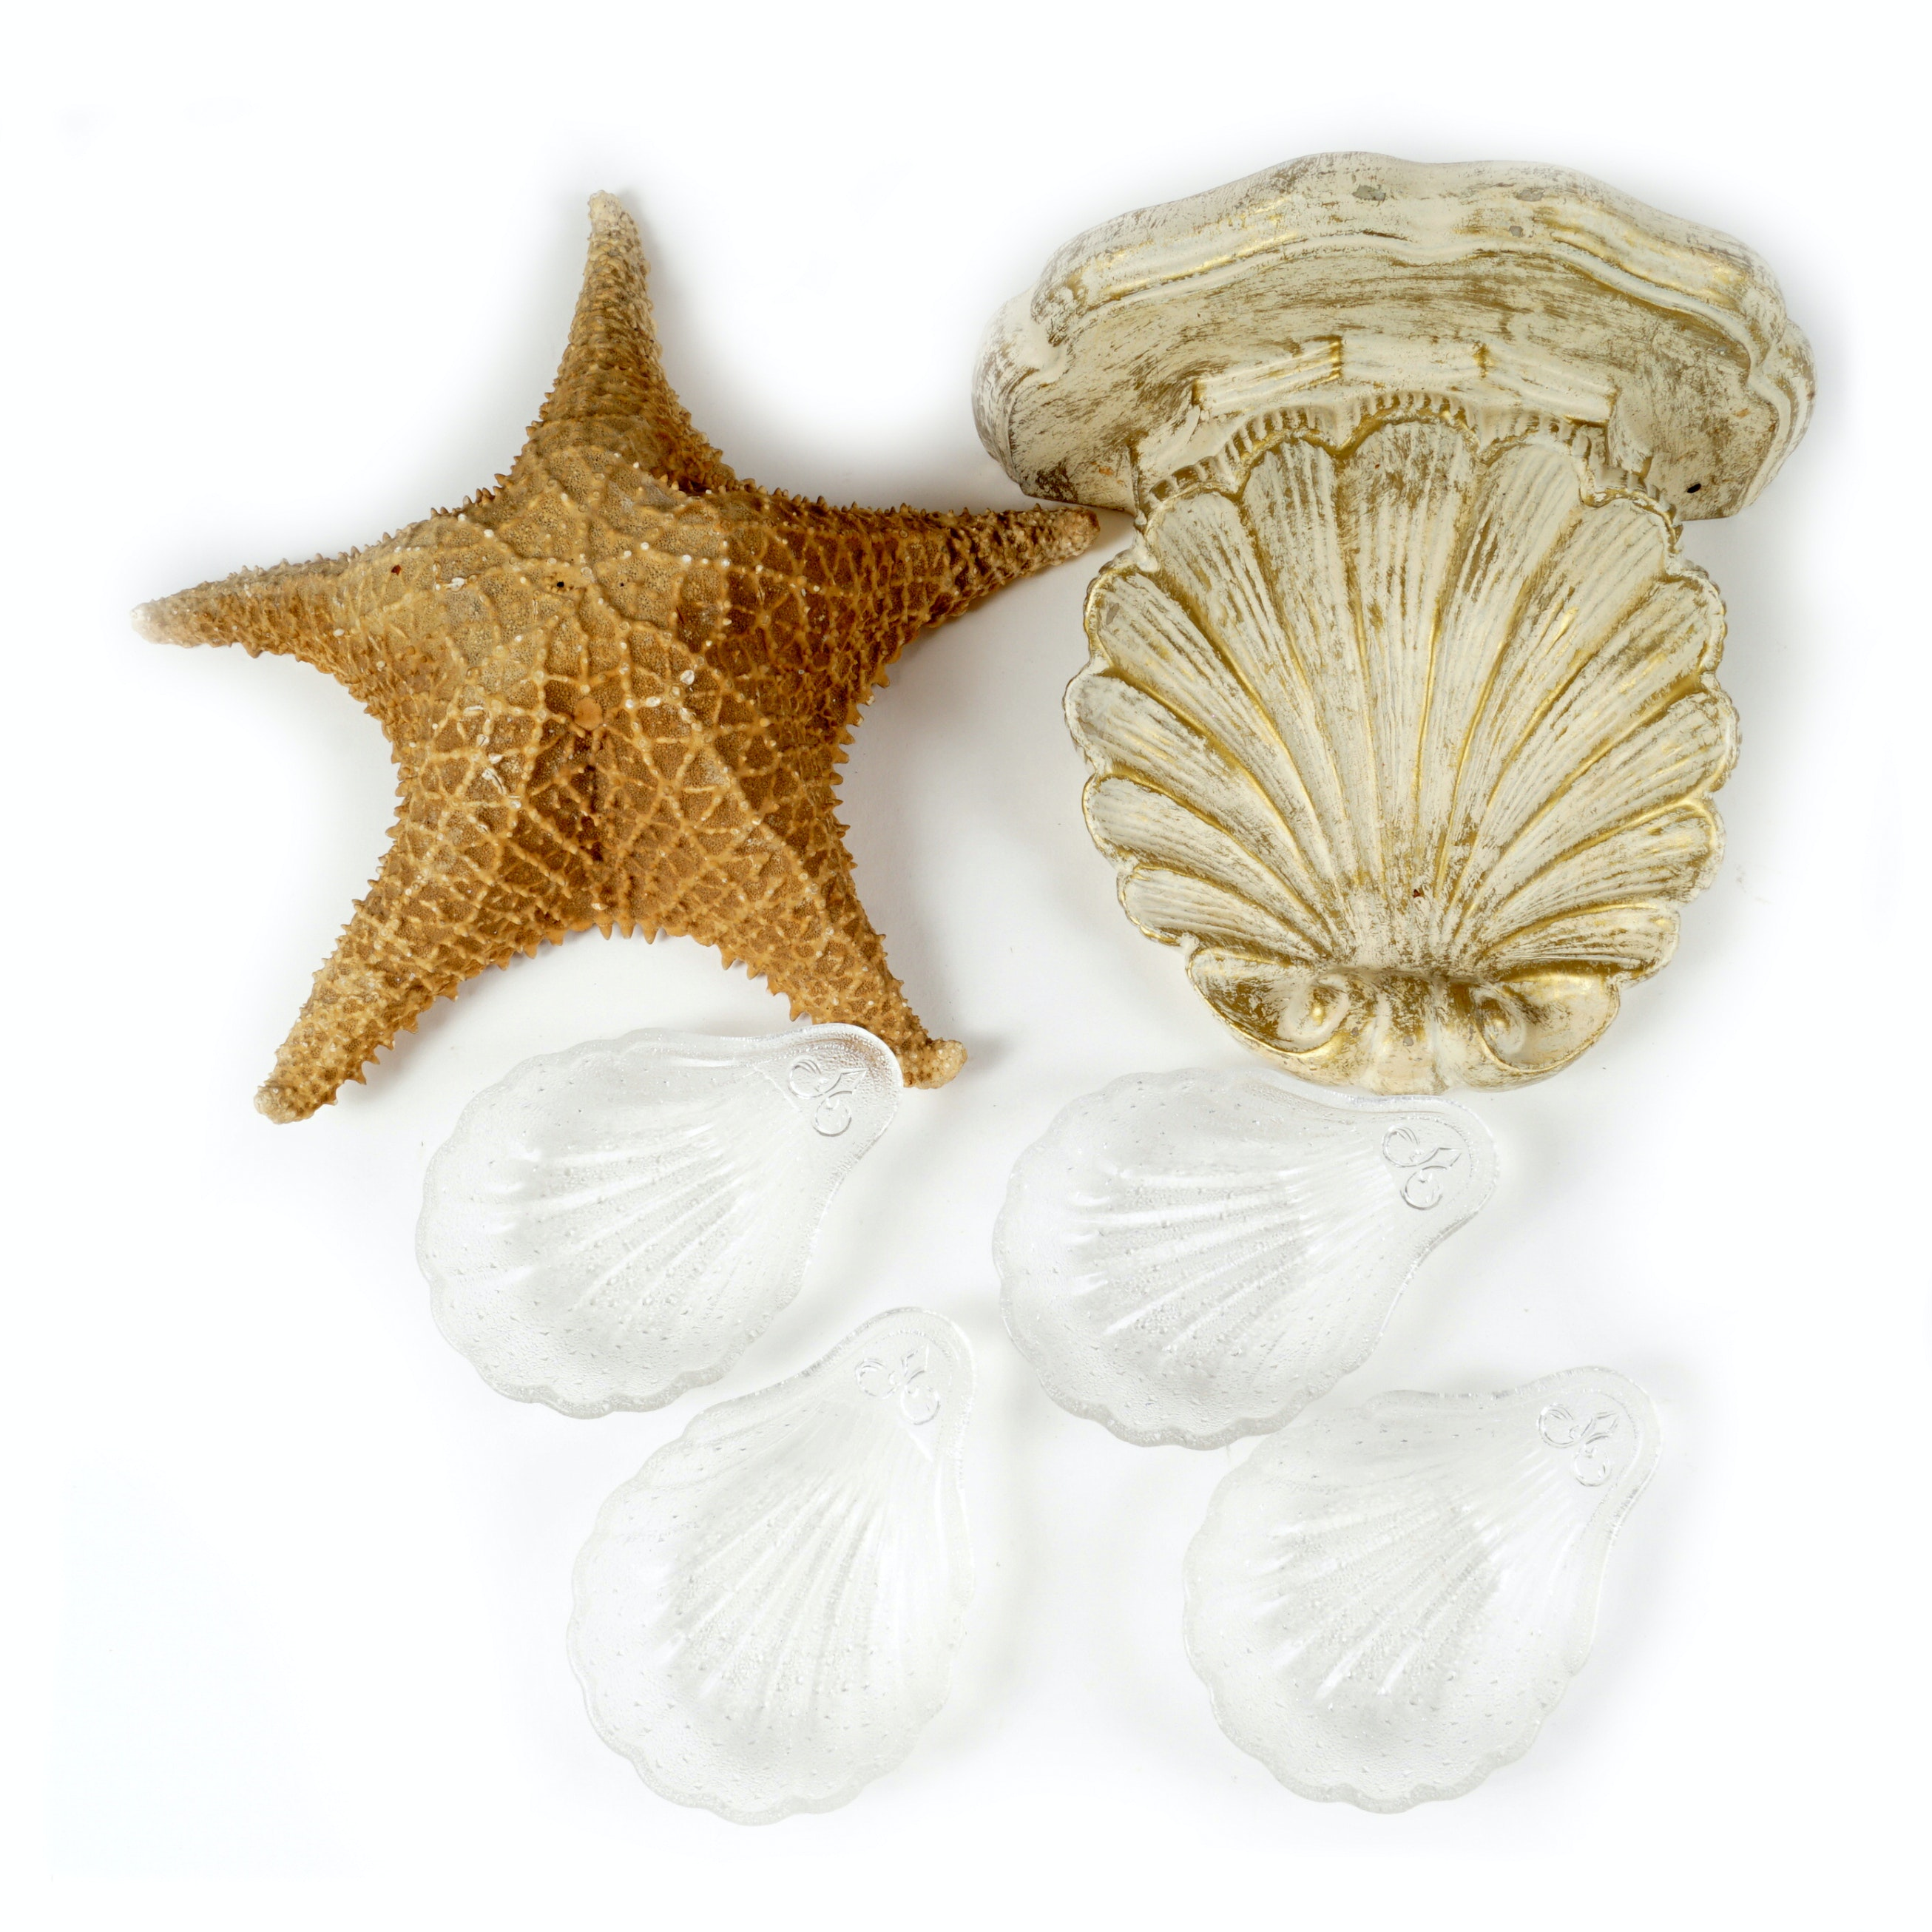 Shell and Sea Creature Decor